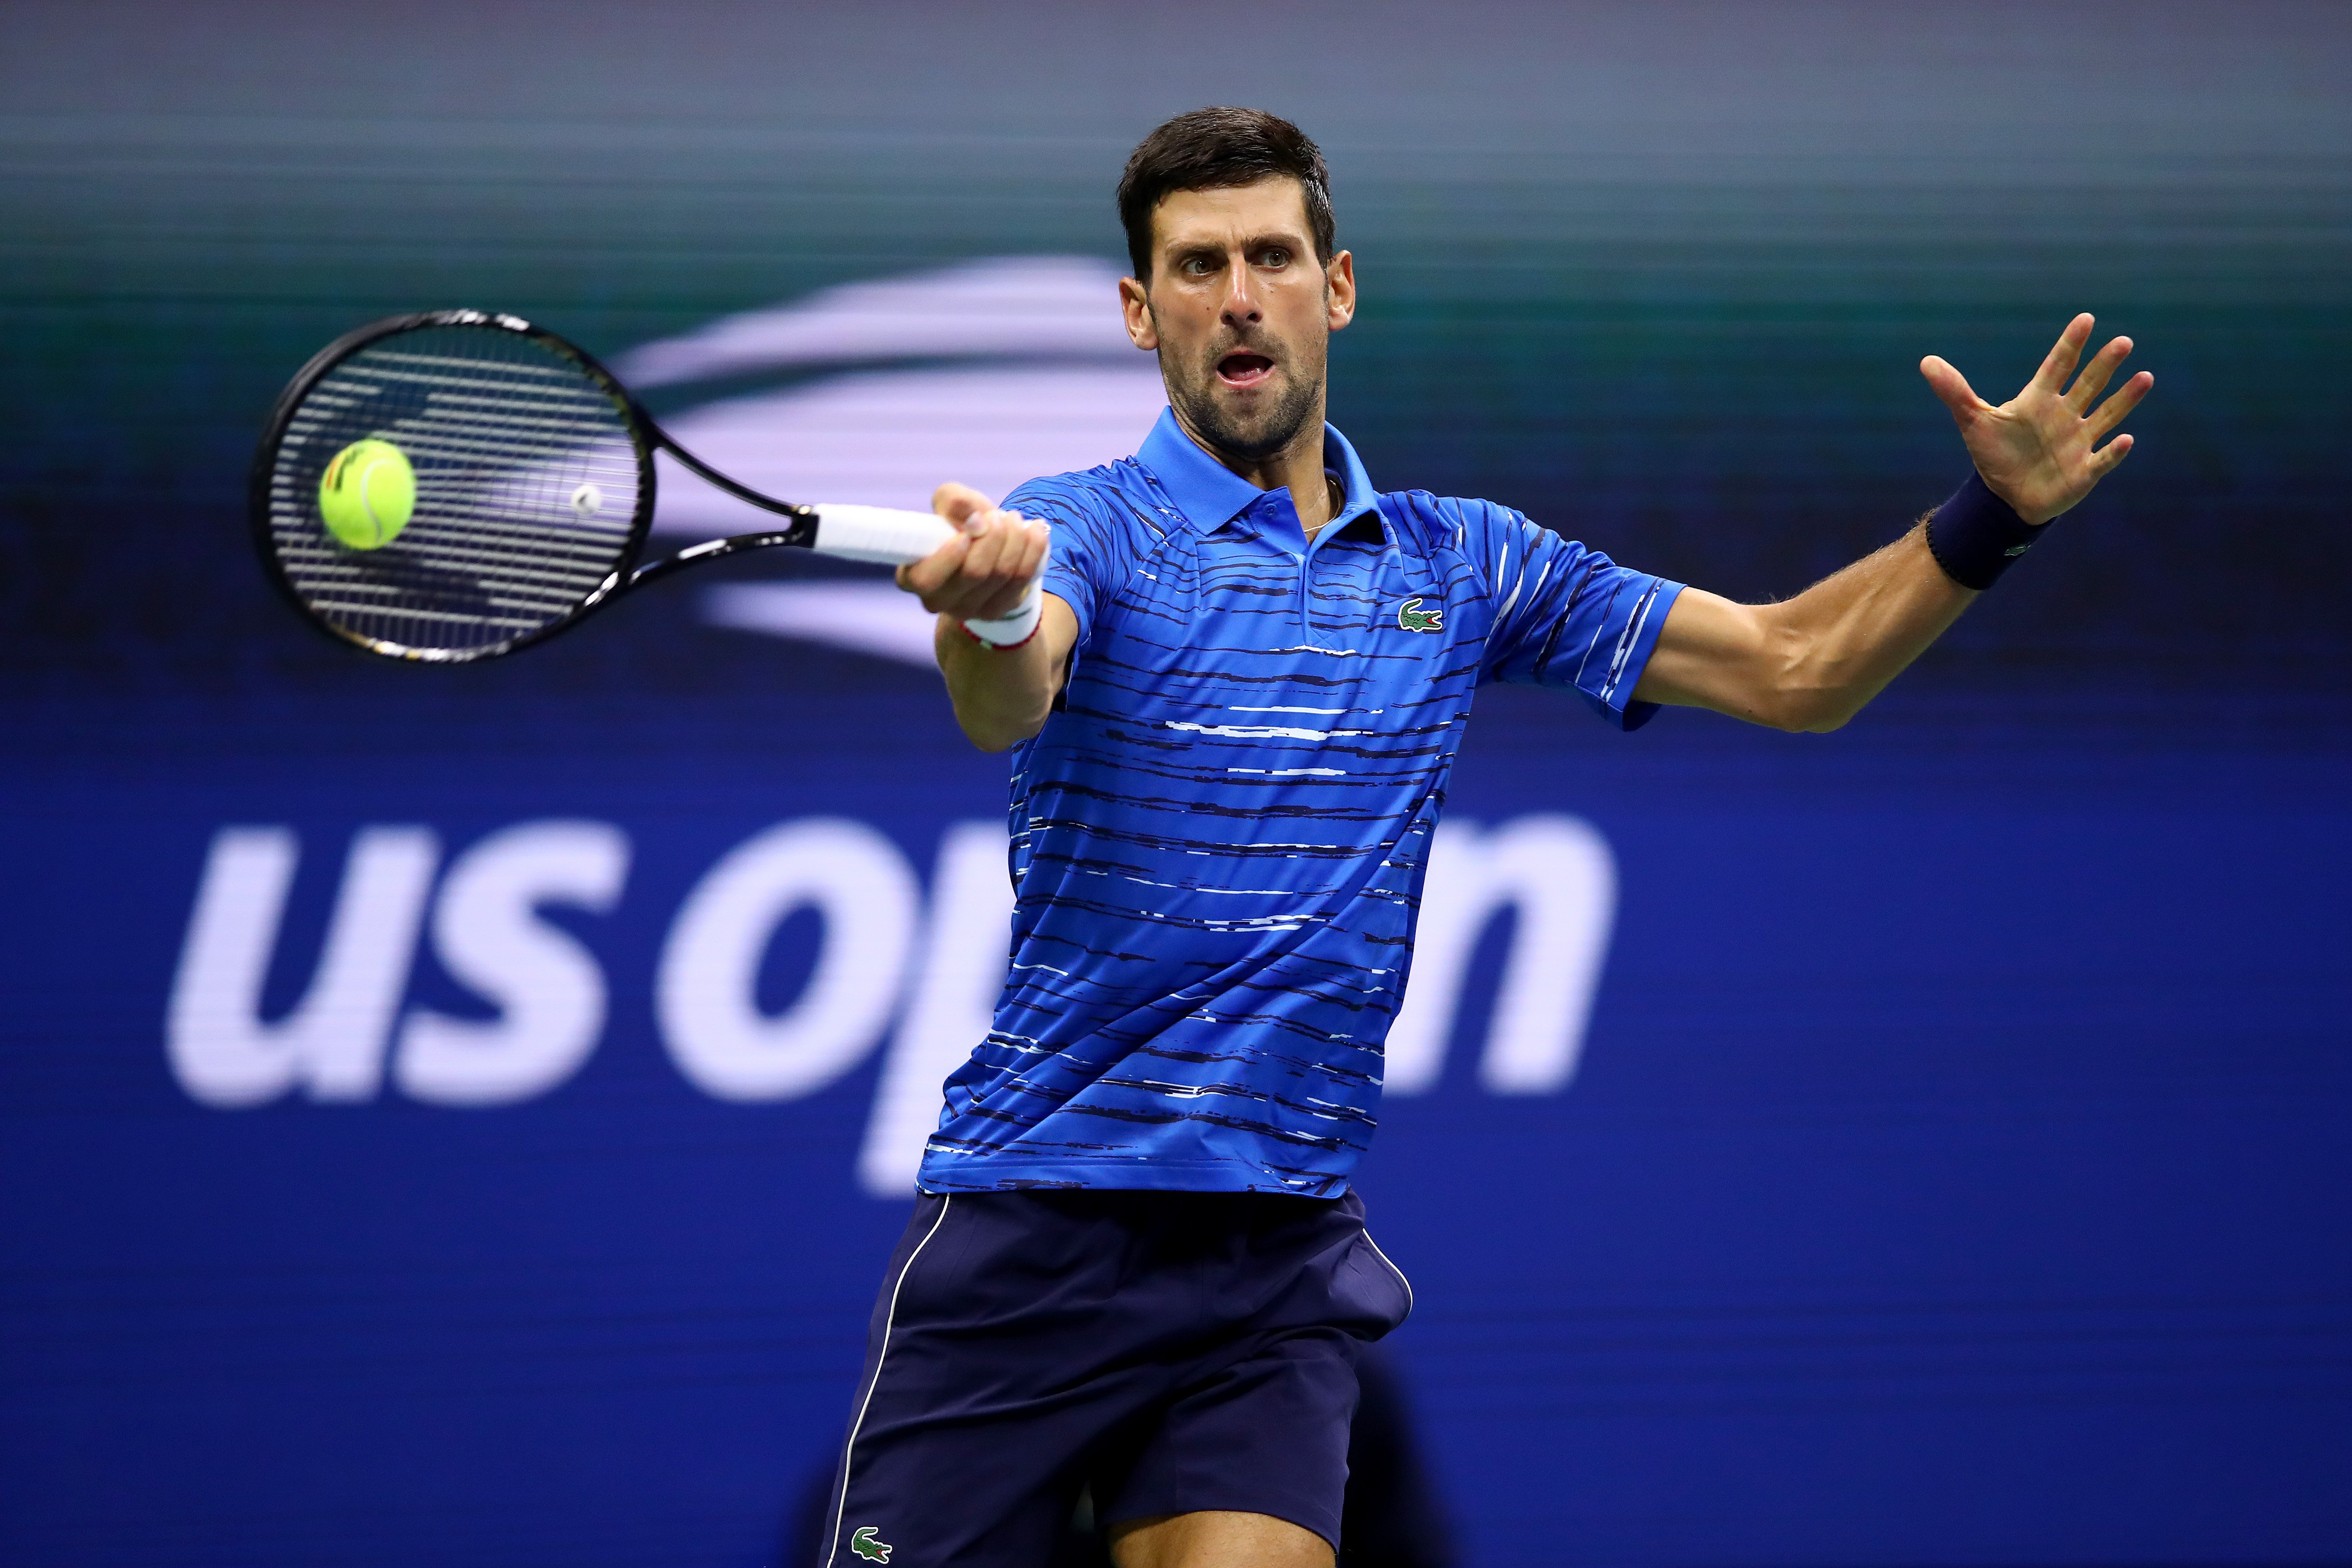 Novak Djokovic returns a shot during his Men's Singles second round match against Juan Ignacio Londero of Argentina on day three of the 2019 US Open. | Source: Getty Images.